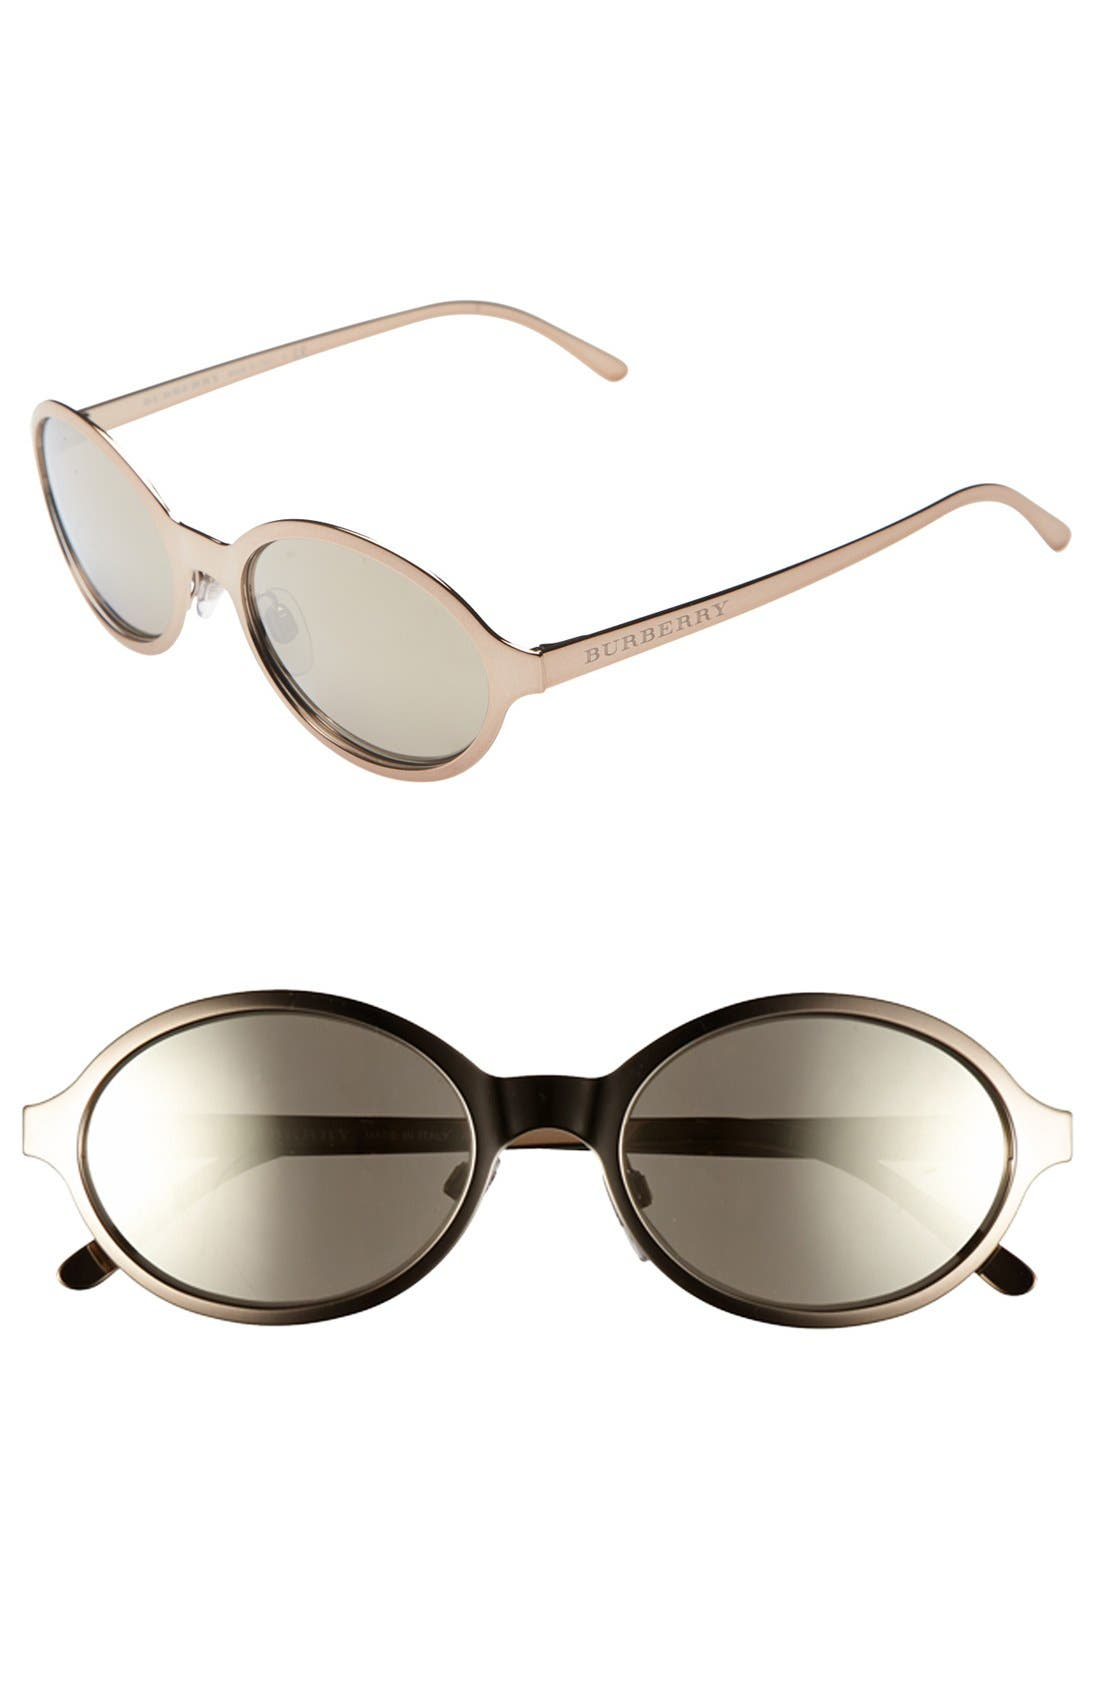 Main Image - Burberry 'Splash' 54mm Sunglasses